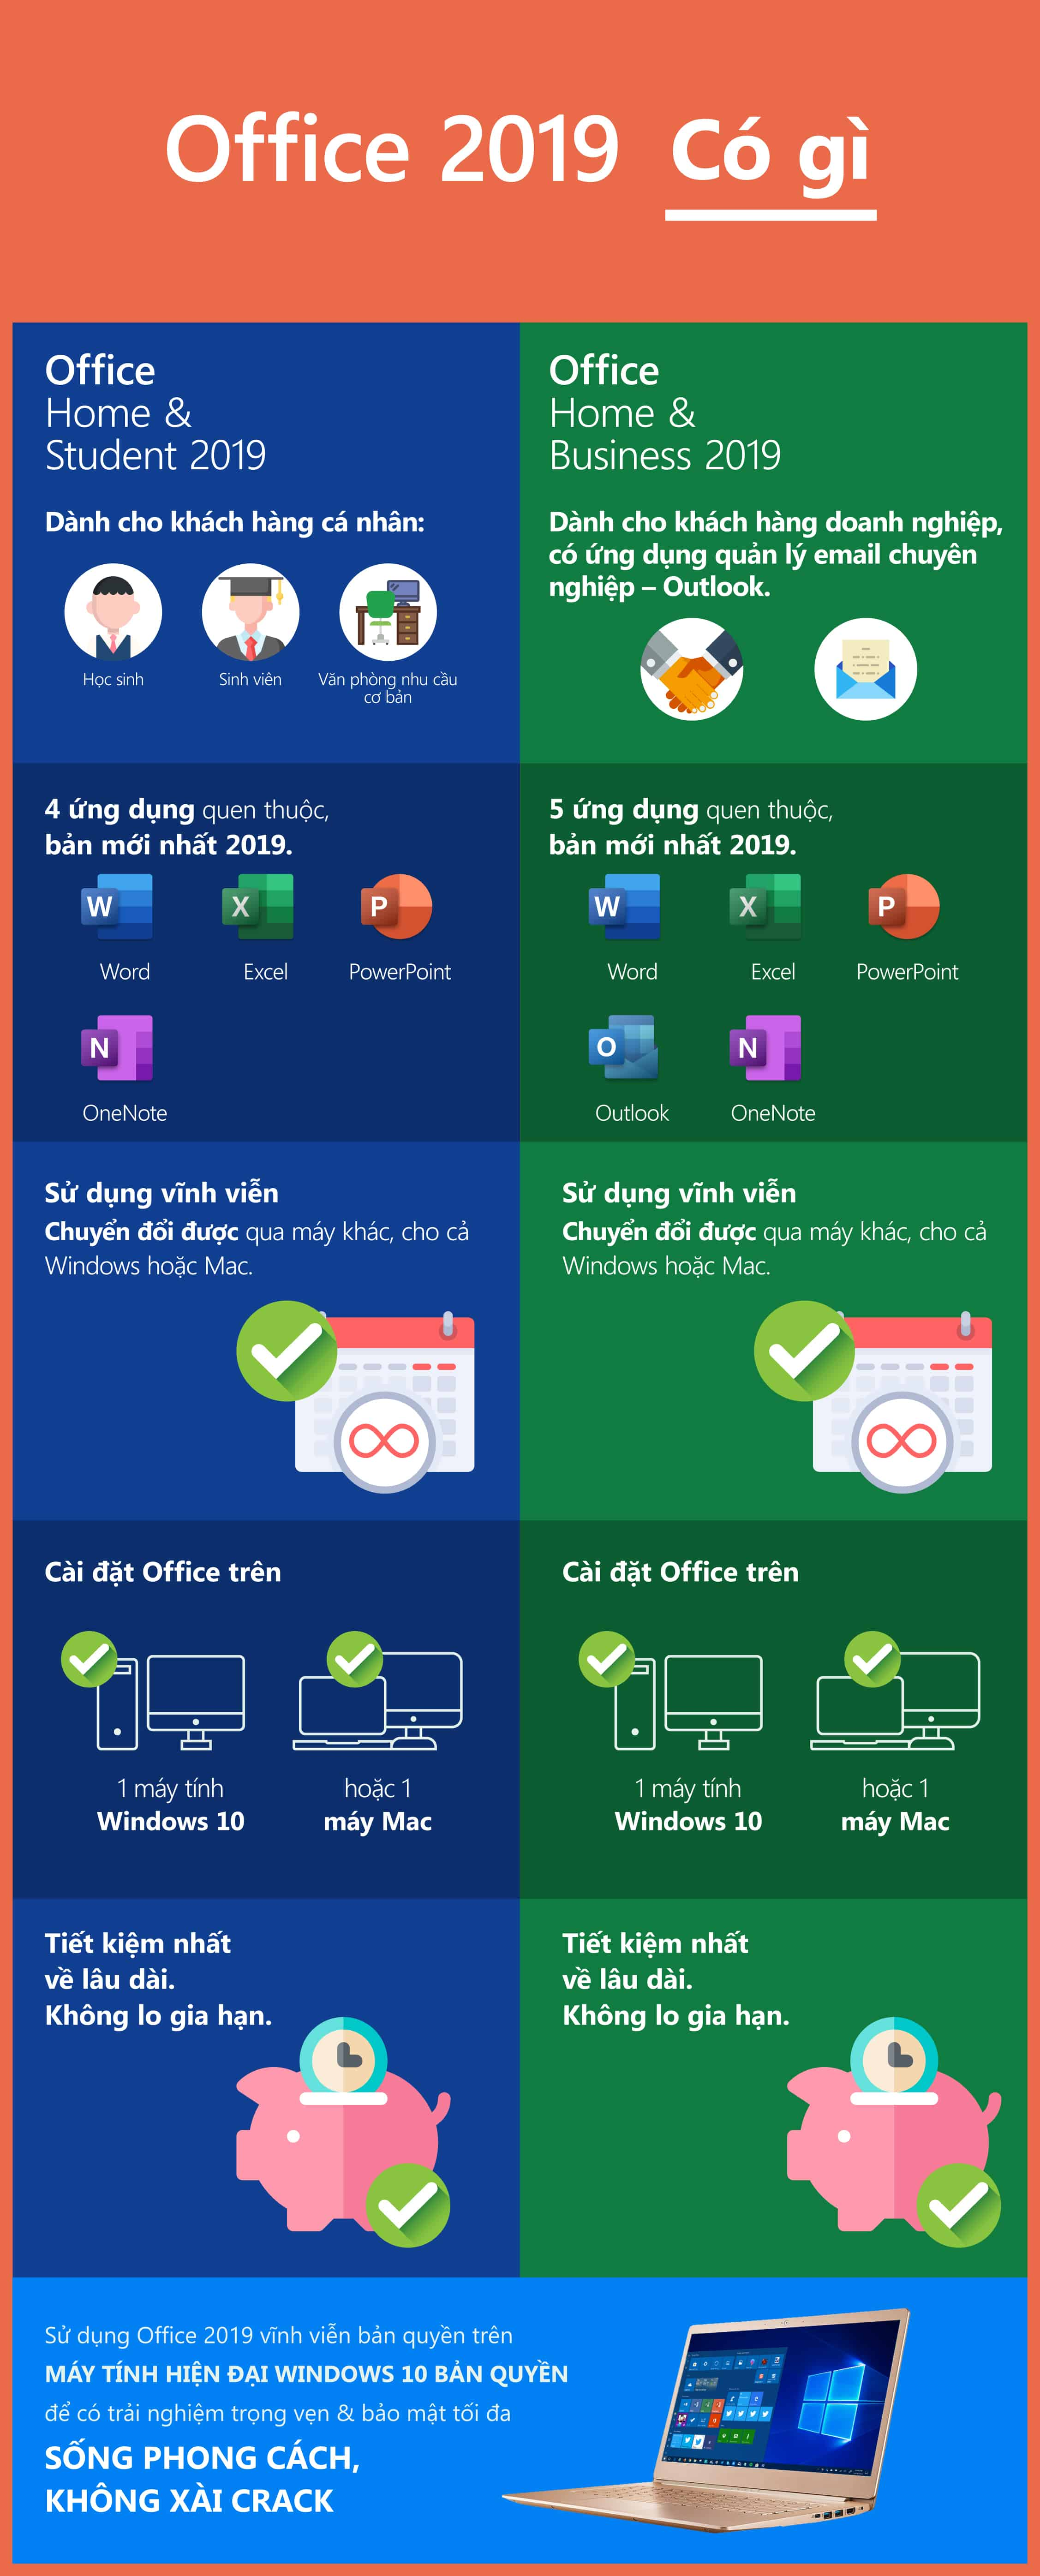 Infographic Office 2019 so sánh 2 phiên bản Office Home & Student với Office Home & Bussiness 2019